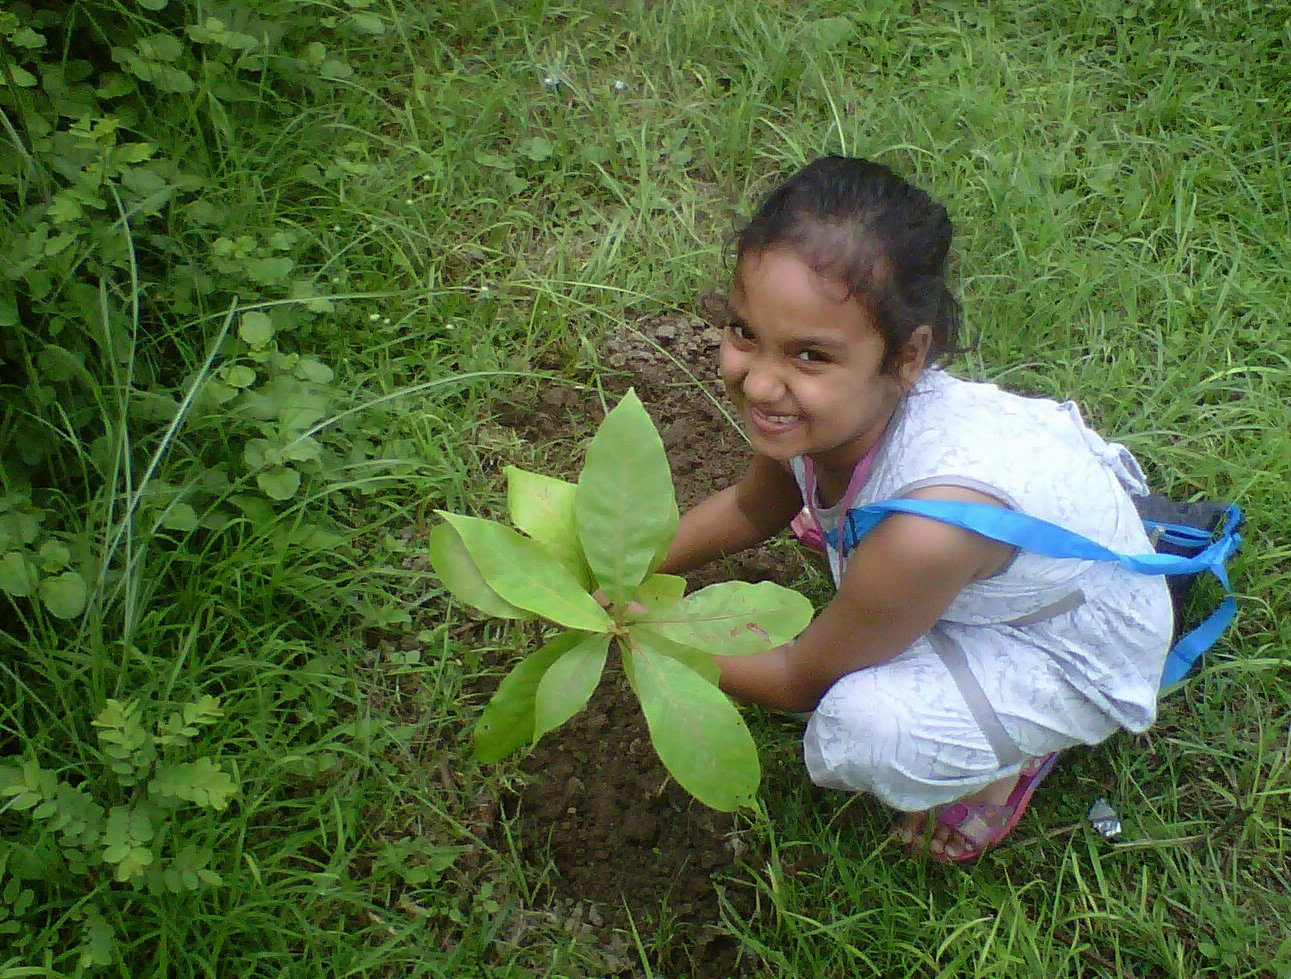 Planting fruit trees in India to fight hunger, poverty and climate change.